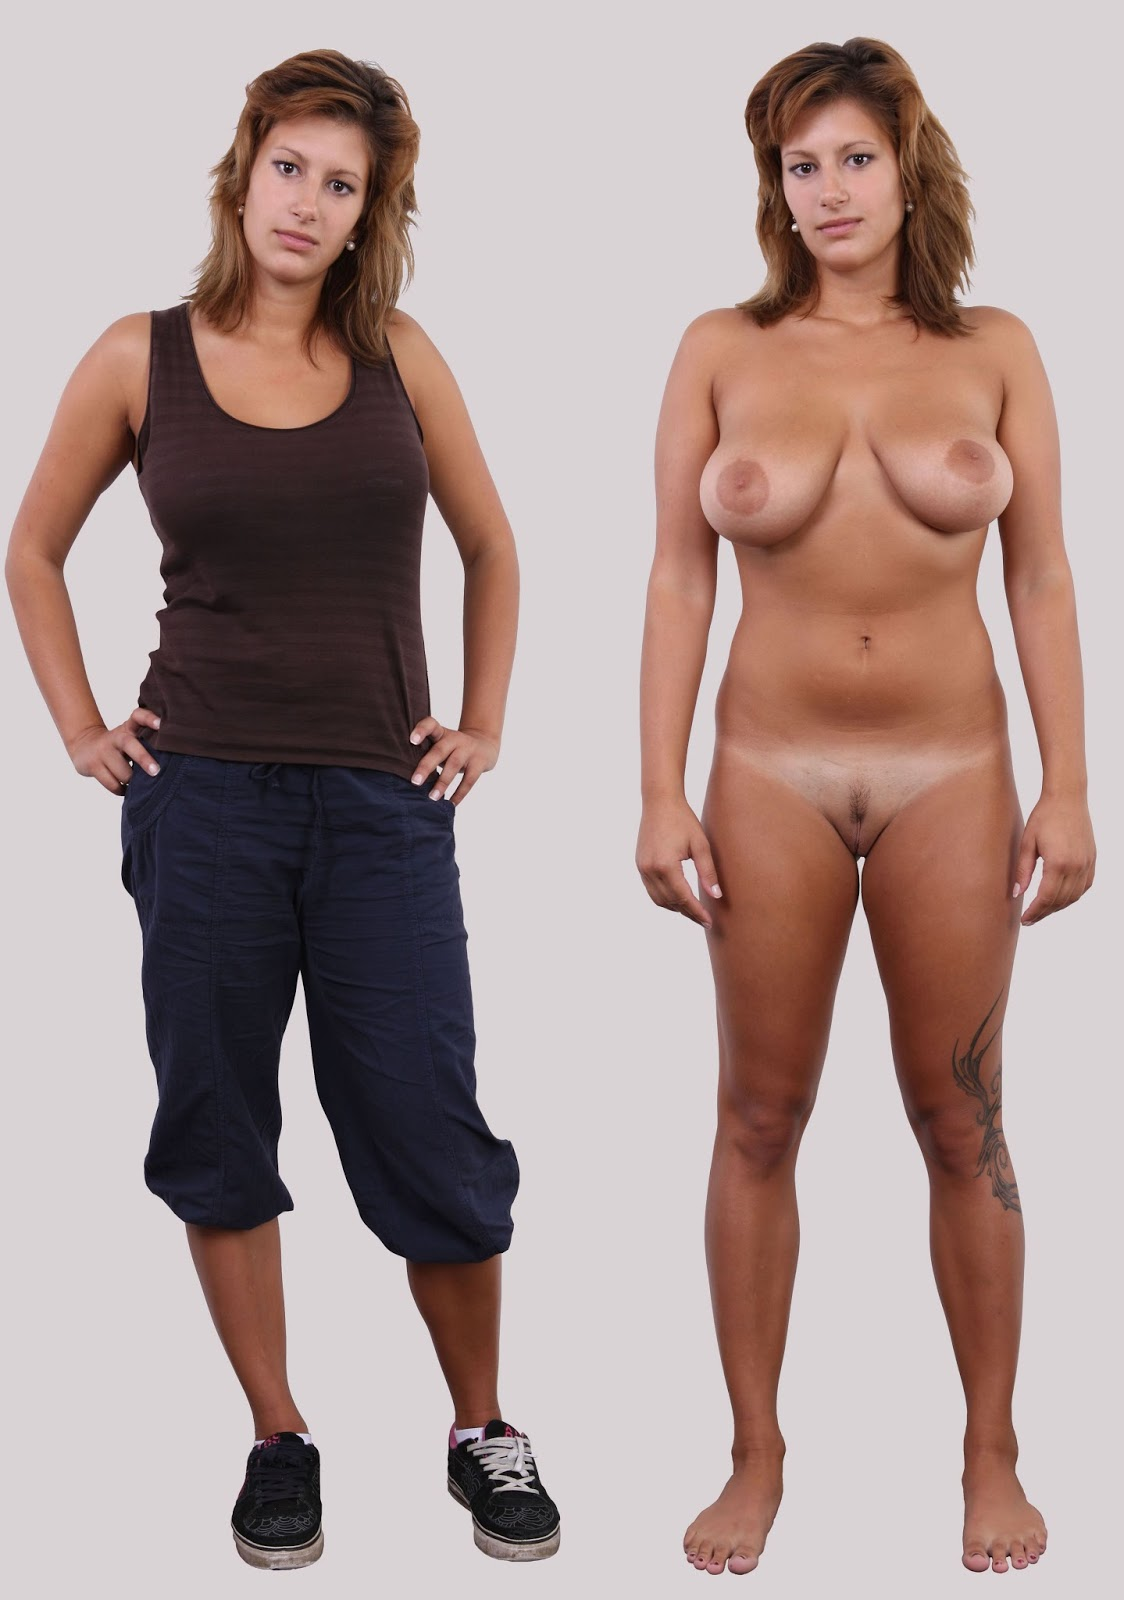 Women Clothed Naked